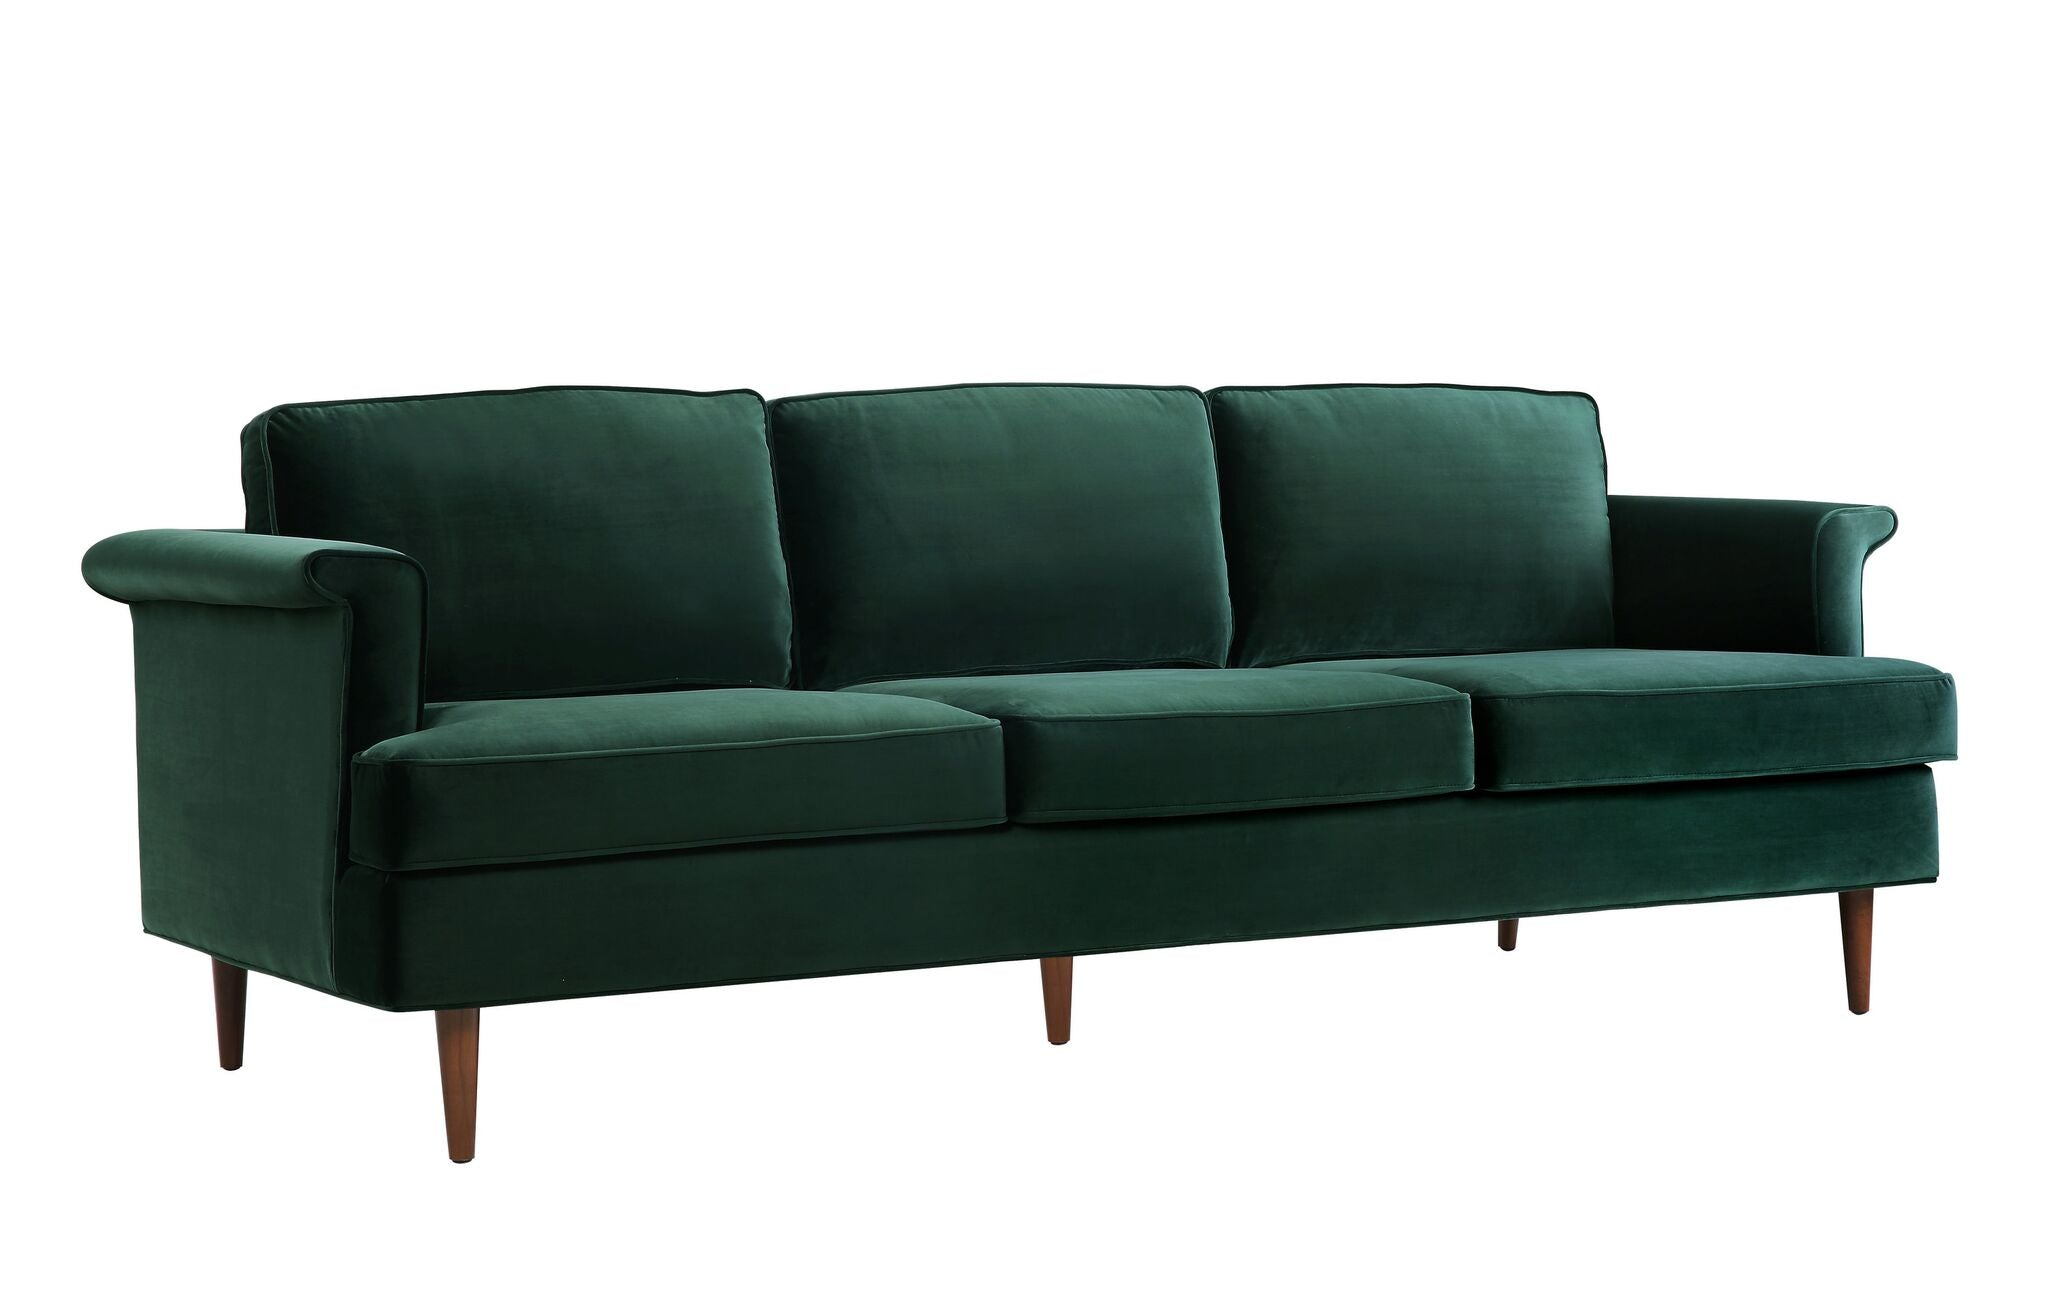 Porter Forest Green Sofa - State.Mint Home & Garden